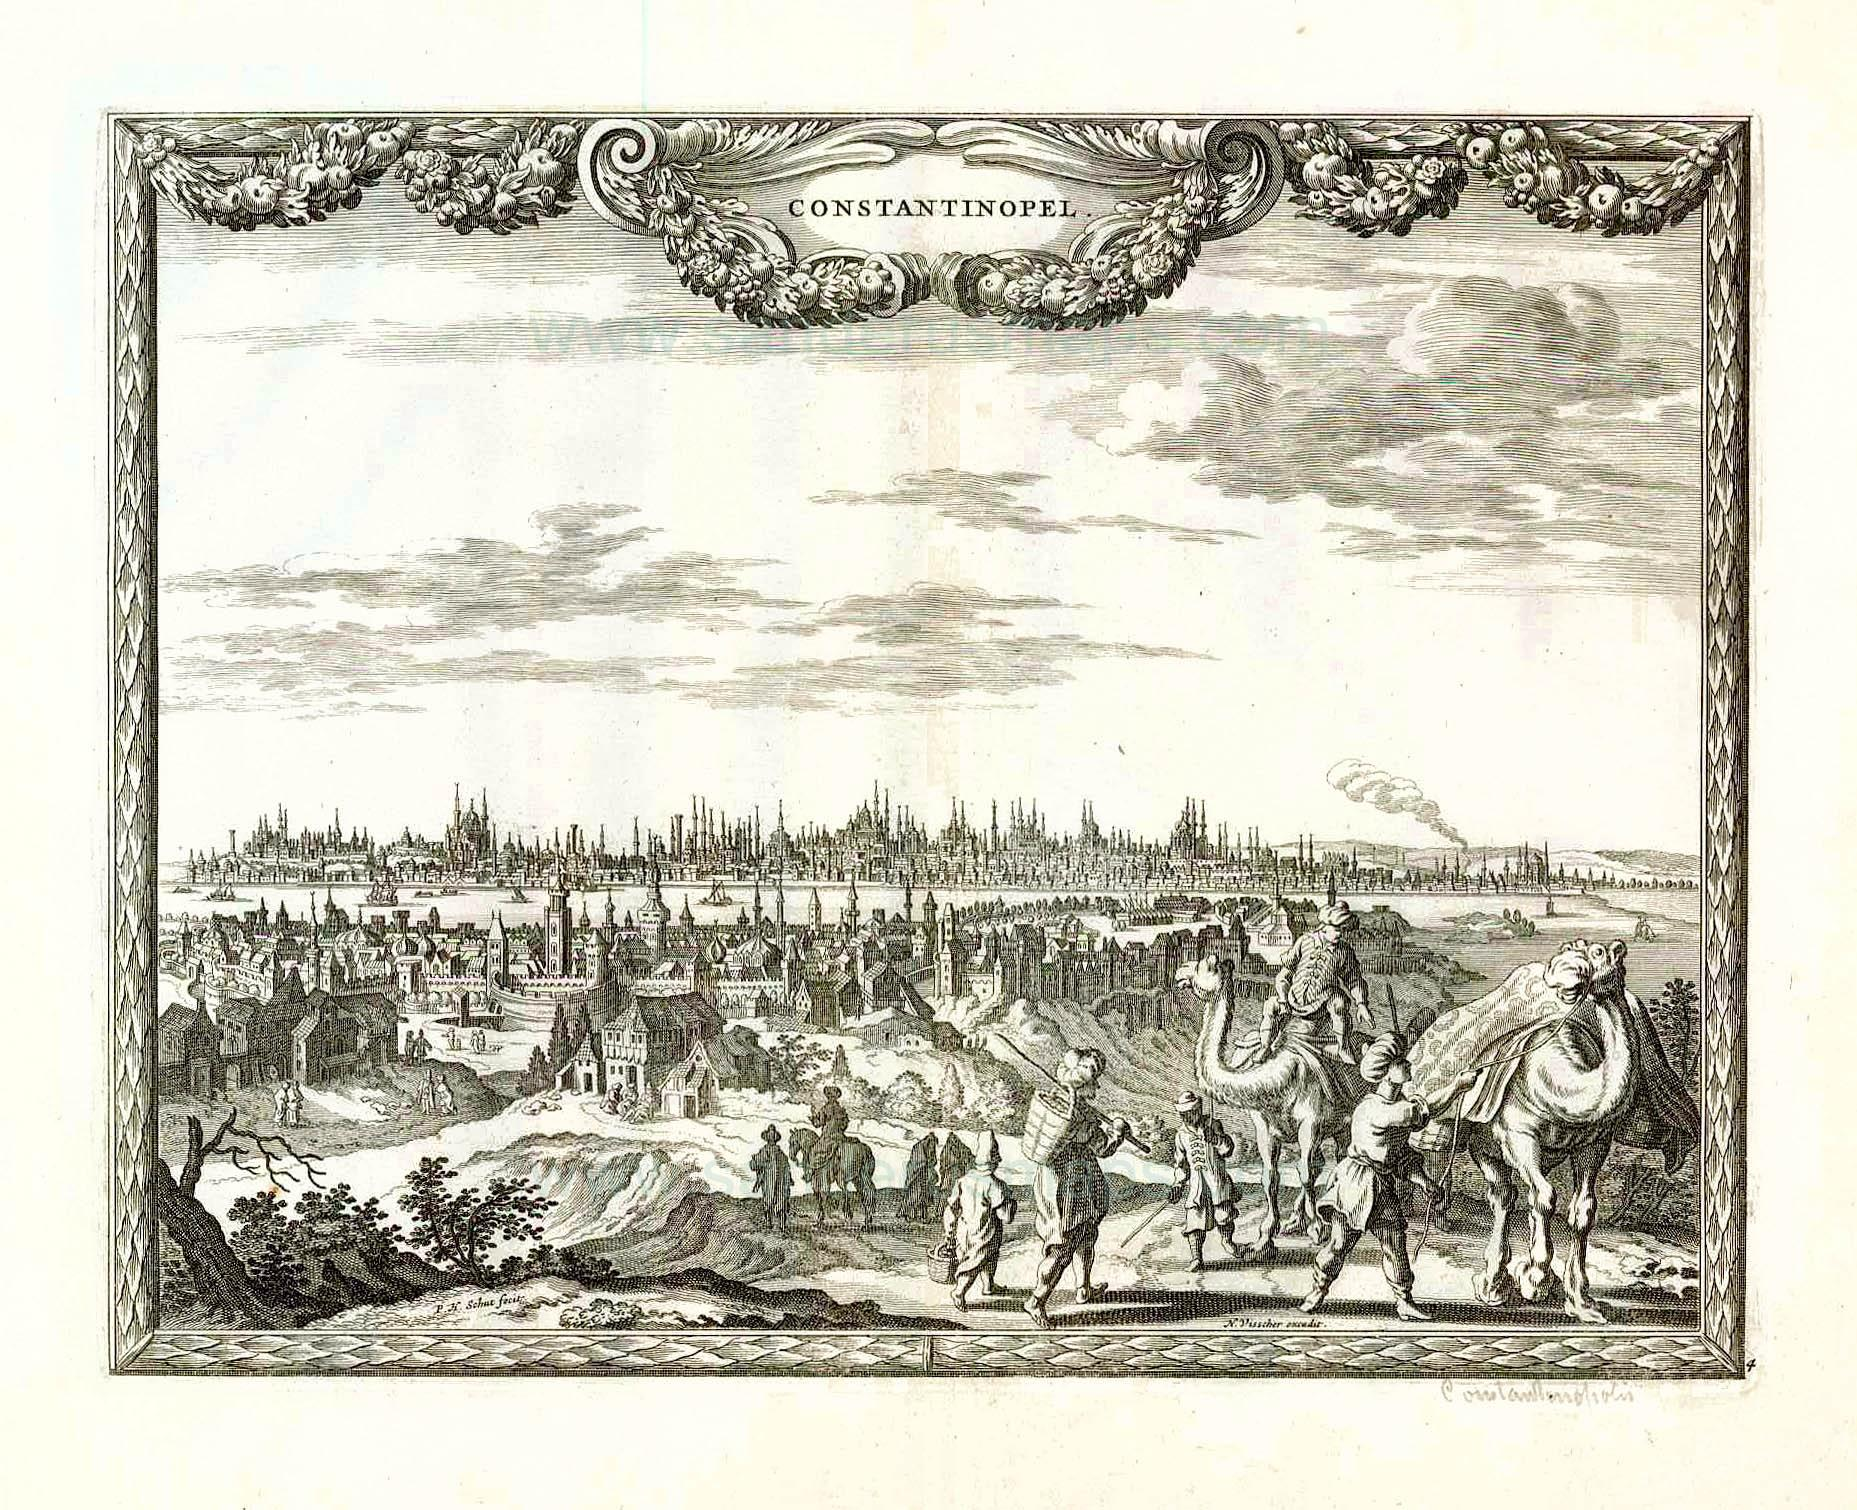 A European Gravure of 17th Century depicting Istanbul